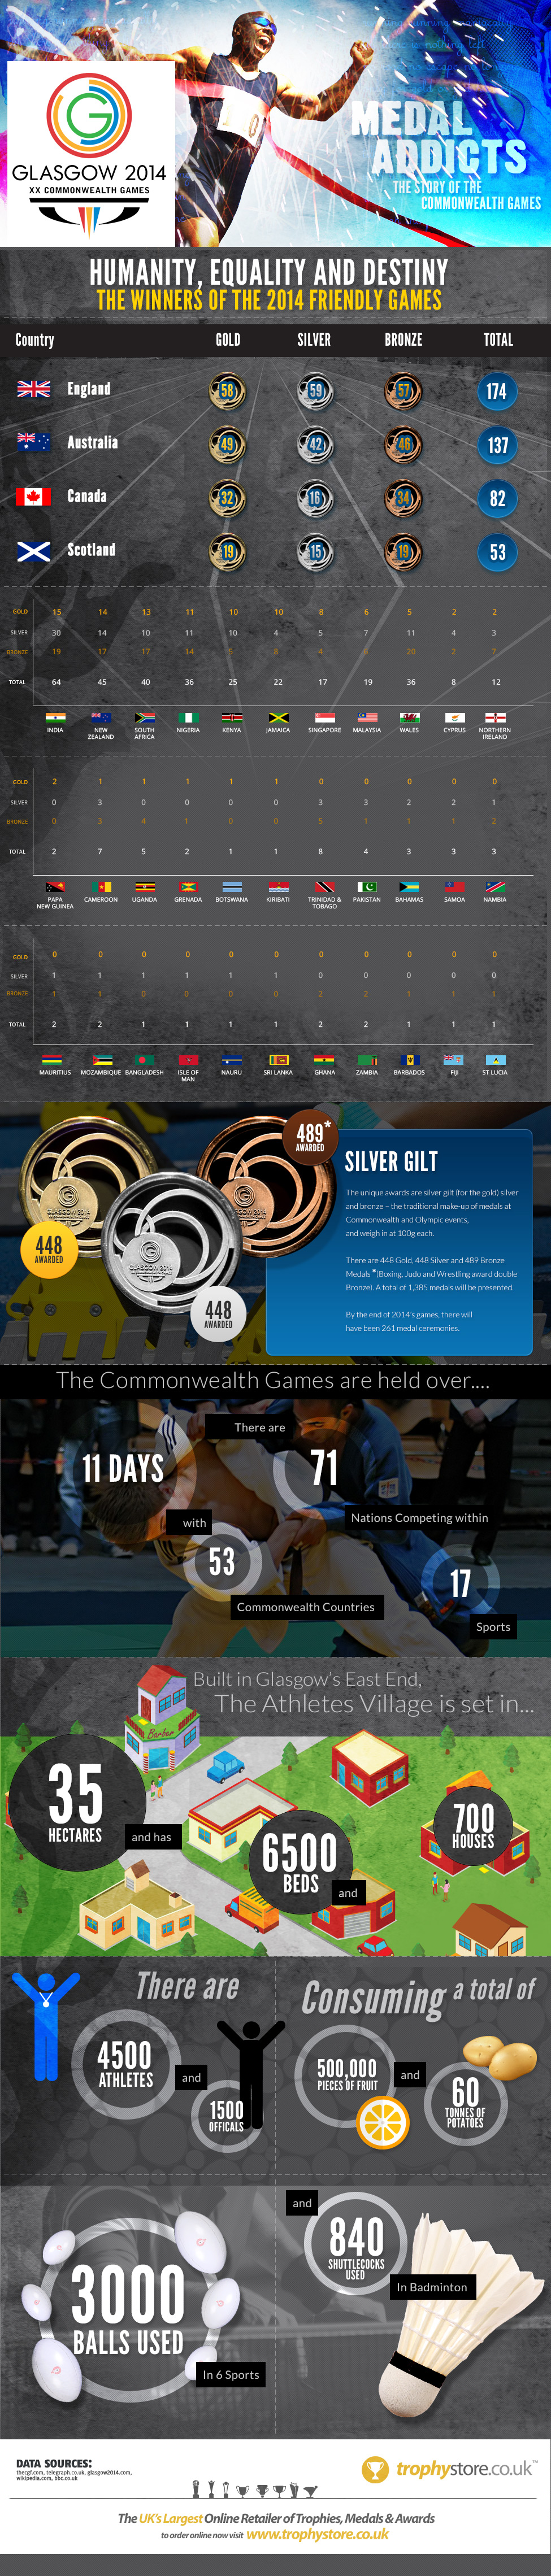 Medal Addicts - Glasgow 2014 Commonwealth Games Infographic